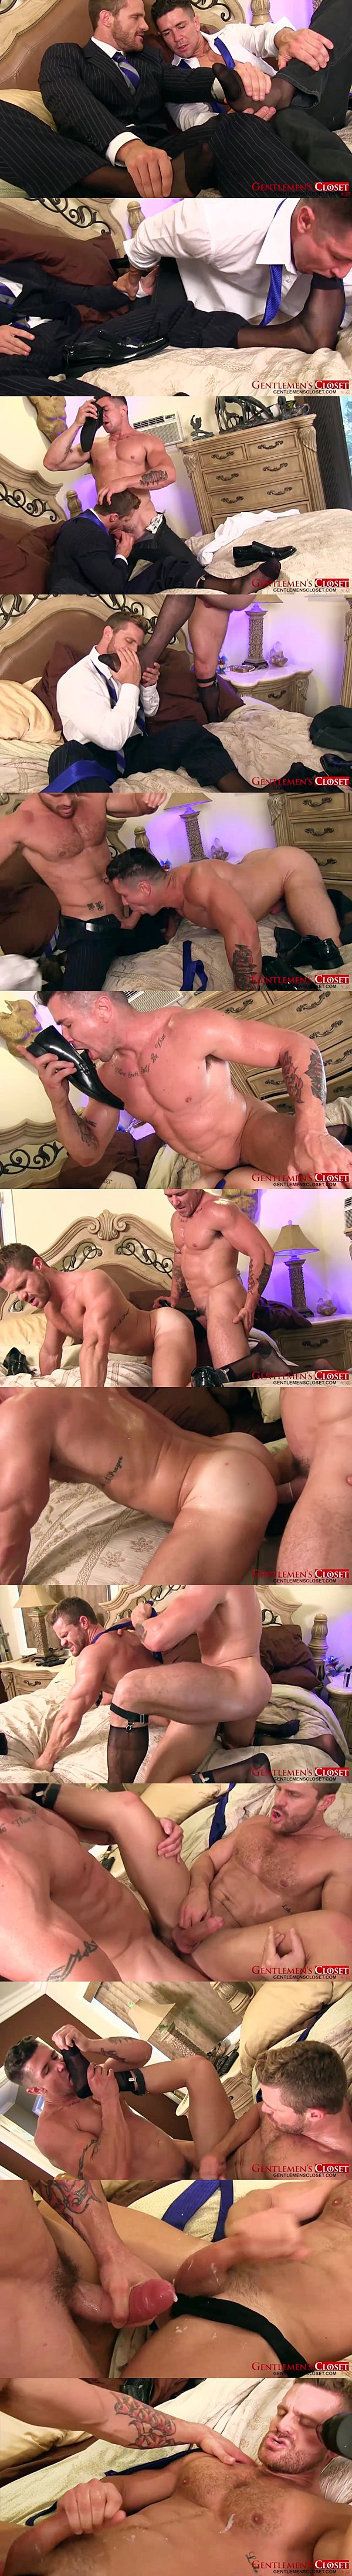 Trenton Ducati fucks Landon Conrad with hot fetish of foot sucking, foot sniffing, sheer socks and panty hose at Gentlemenscloset 02